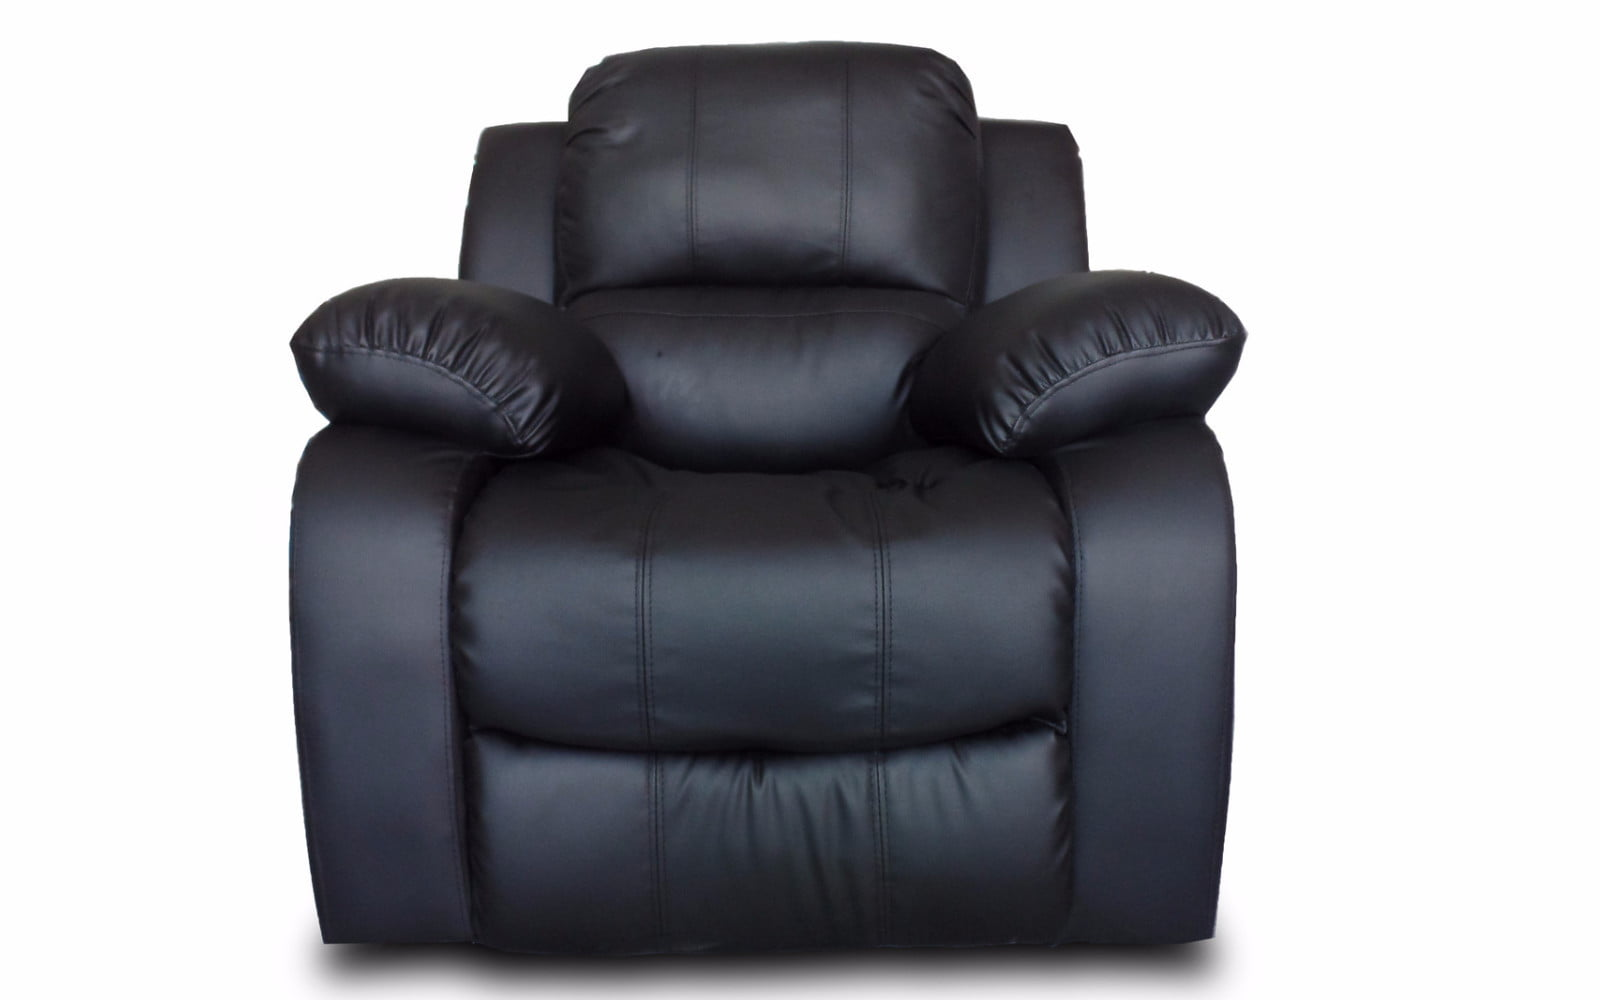 Classic Oversize and Overstuffed Single Seat Bonded Leather Recliner Chair - Walmart.com  sc 1 st  Walmart & Classic Oversize and Overstuffed Single Seat Bonded Leather Recliner ...